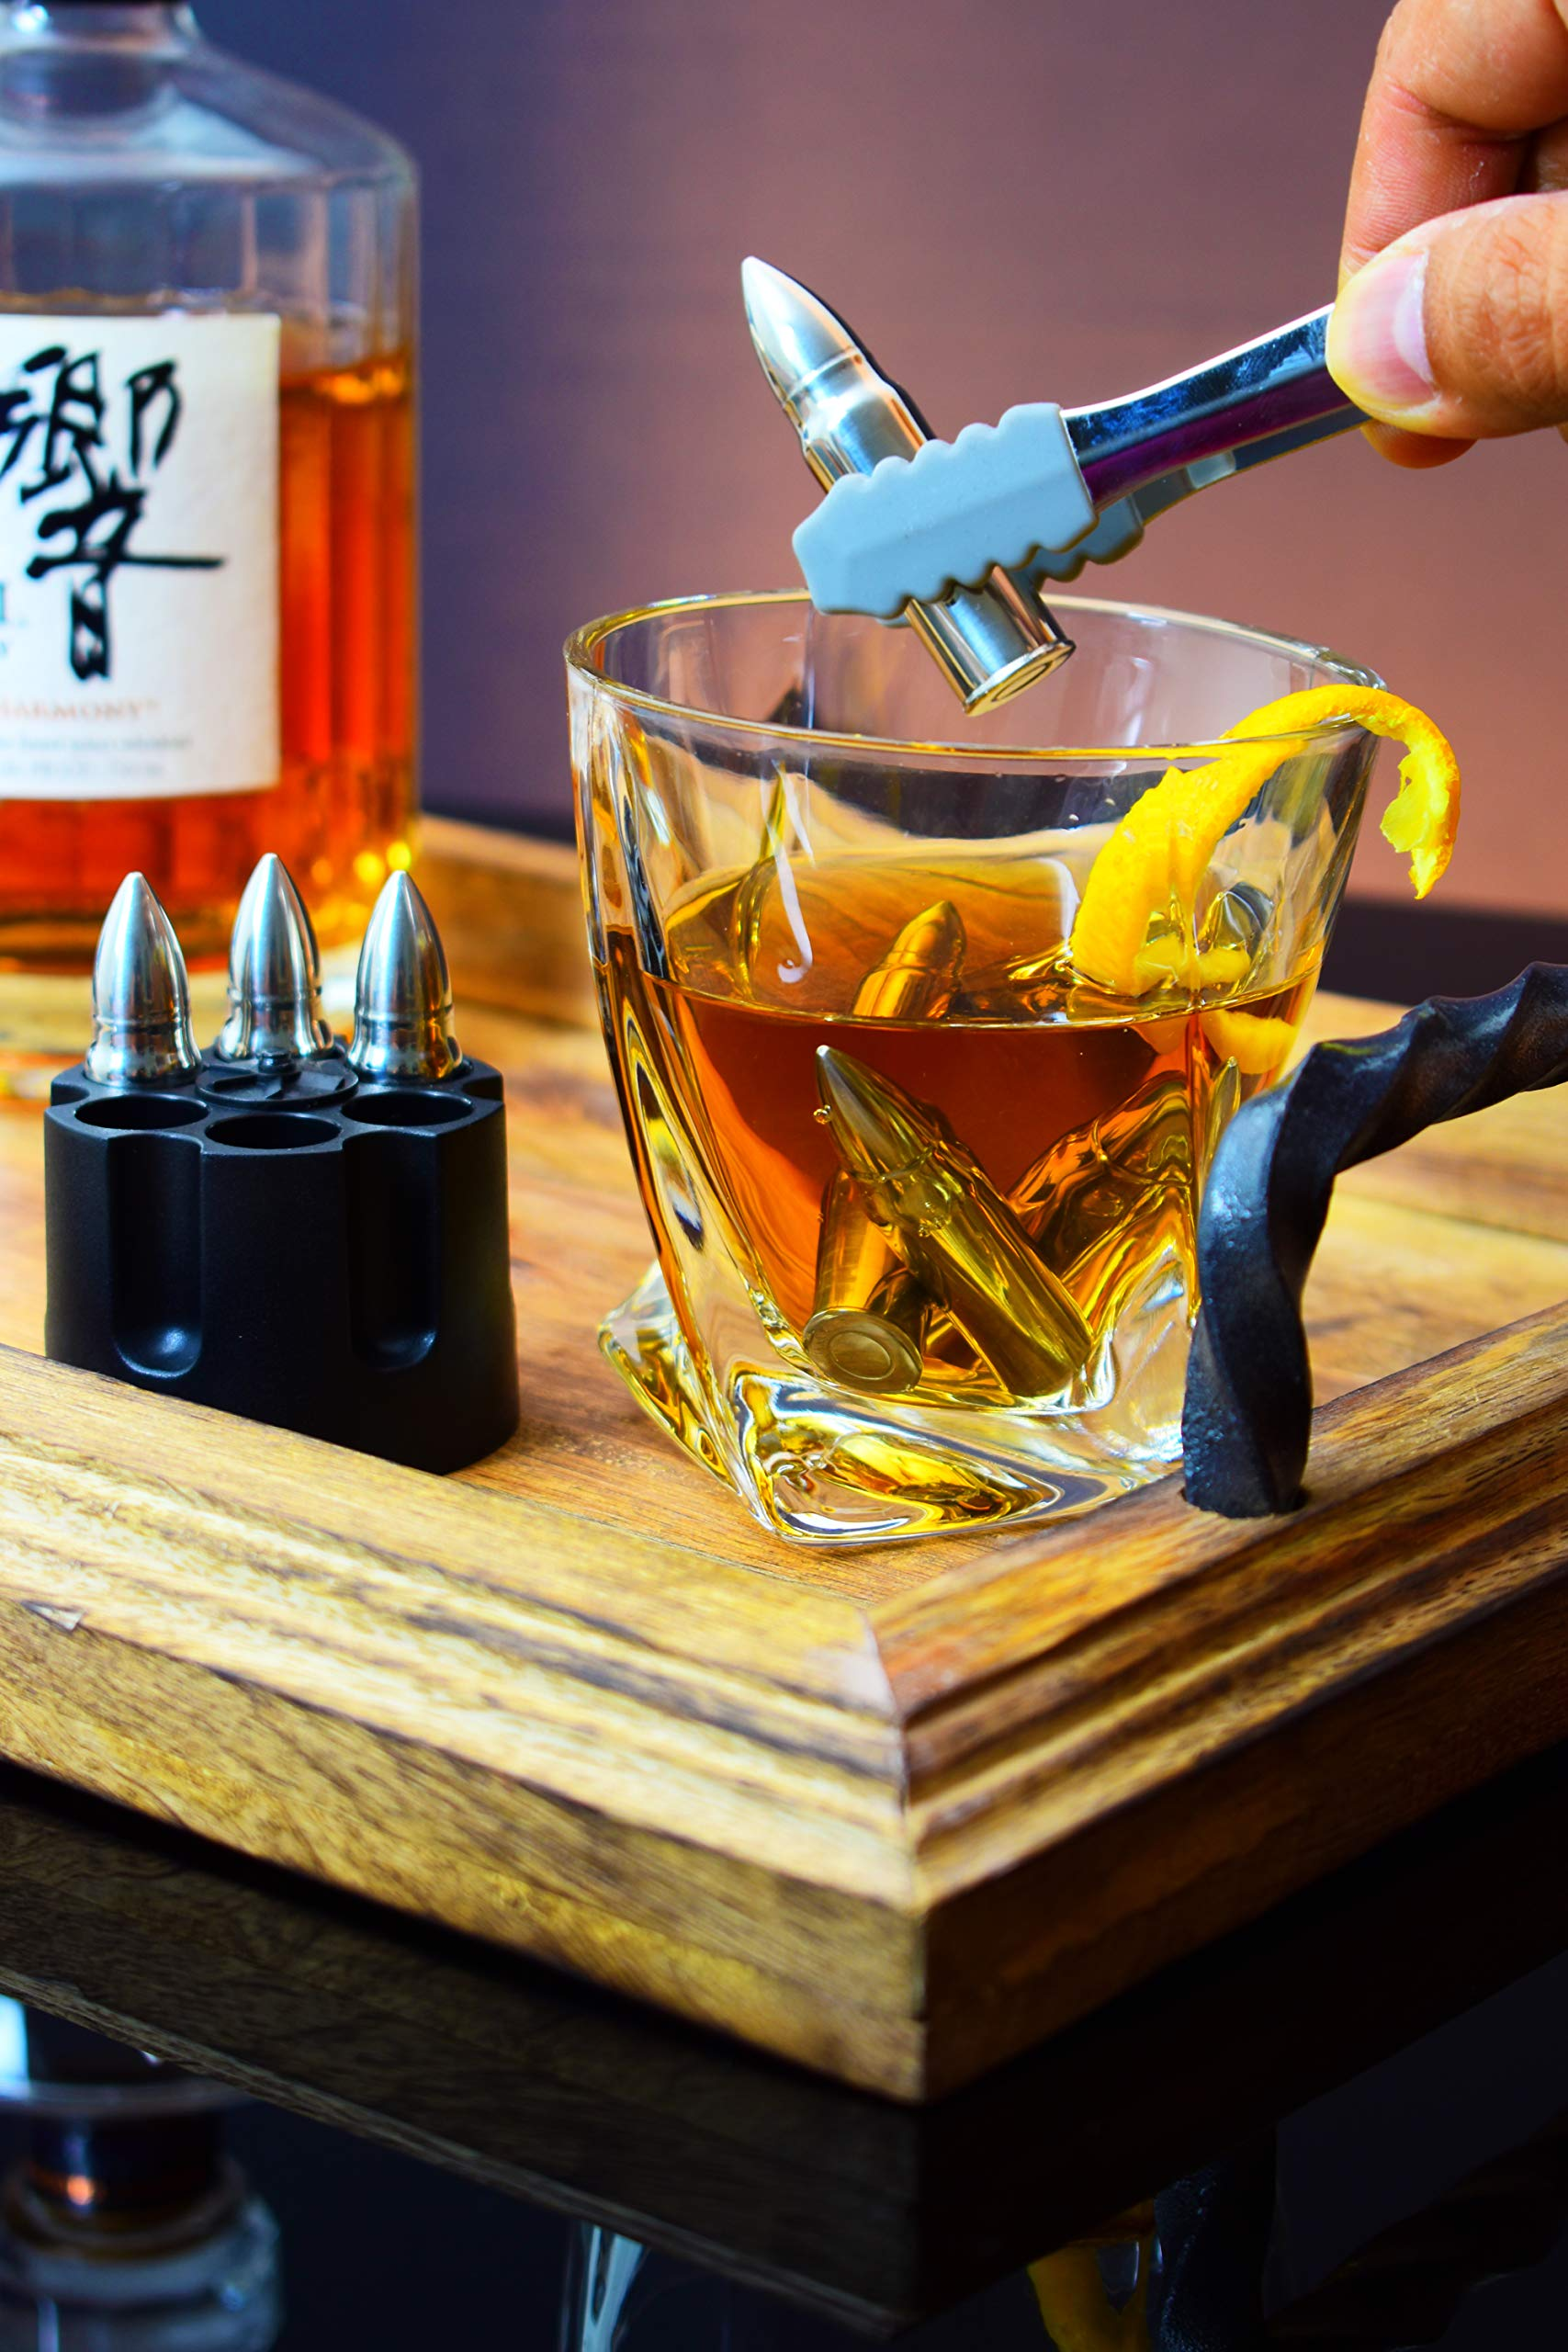 Twist Whiskey Glass and XL Bullet Stones Gift Set - Large Crystal Drinking Cup, 6 Chilling Rocks, Tongs, Revolver Base In Fancy Wooden Box | Cool Gift for Men Dad Boyfriend on Anniversary Retirement by De Crown (Image #6)